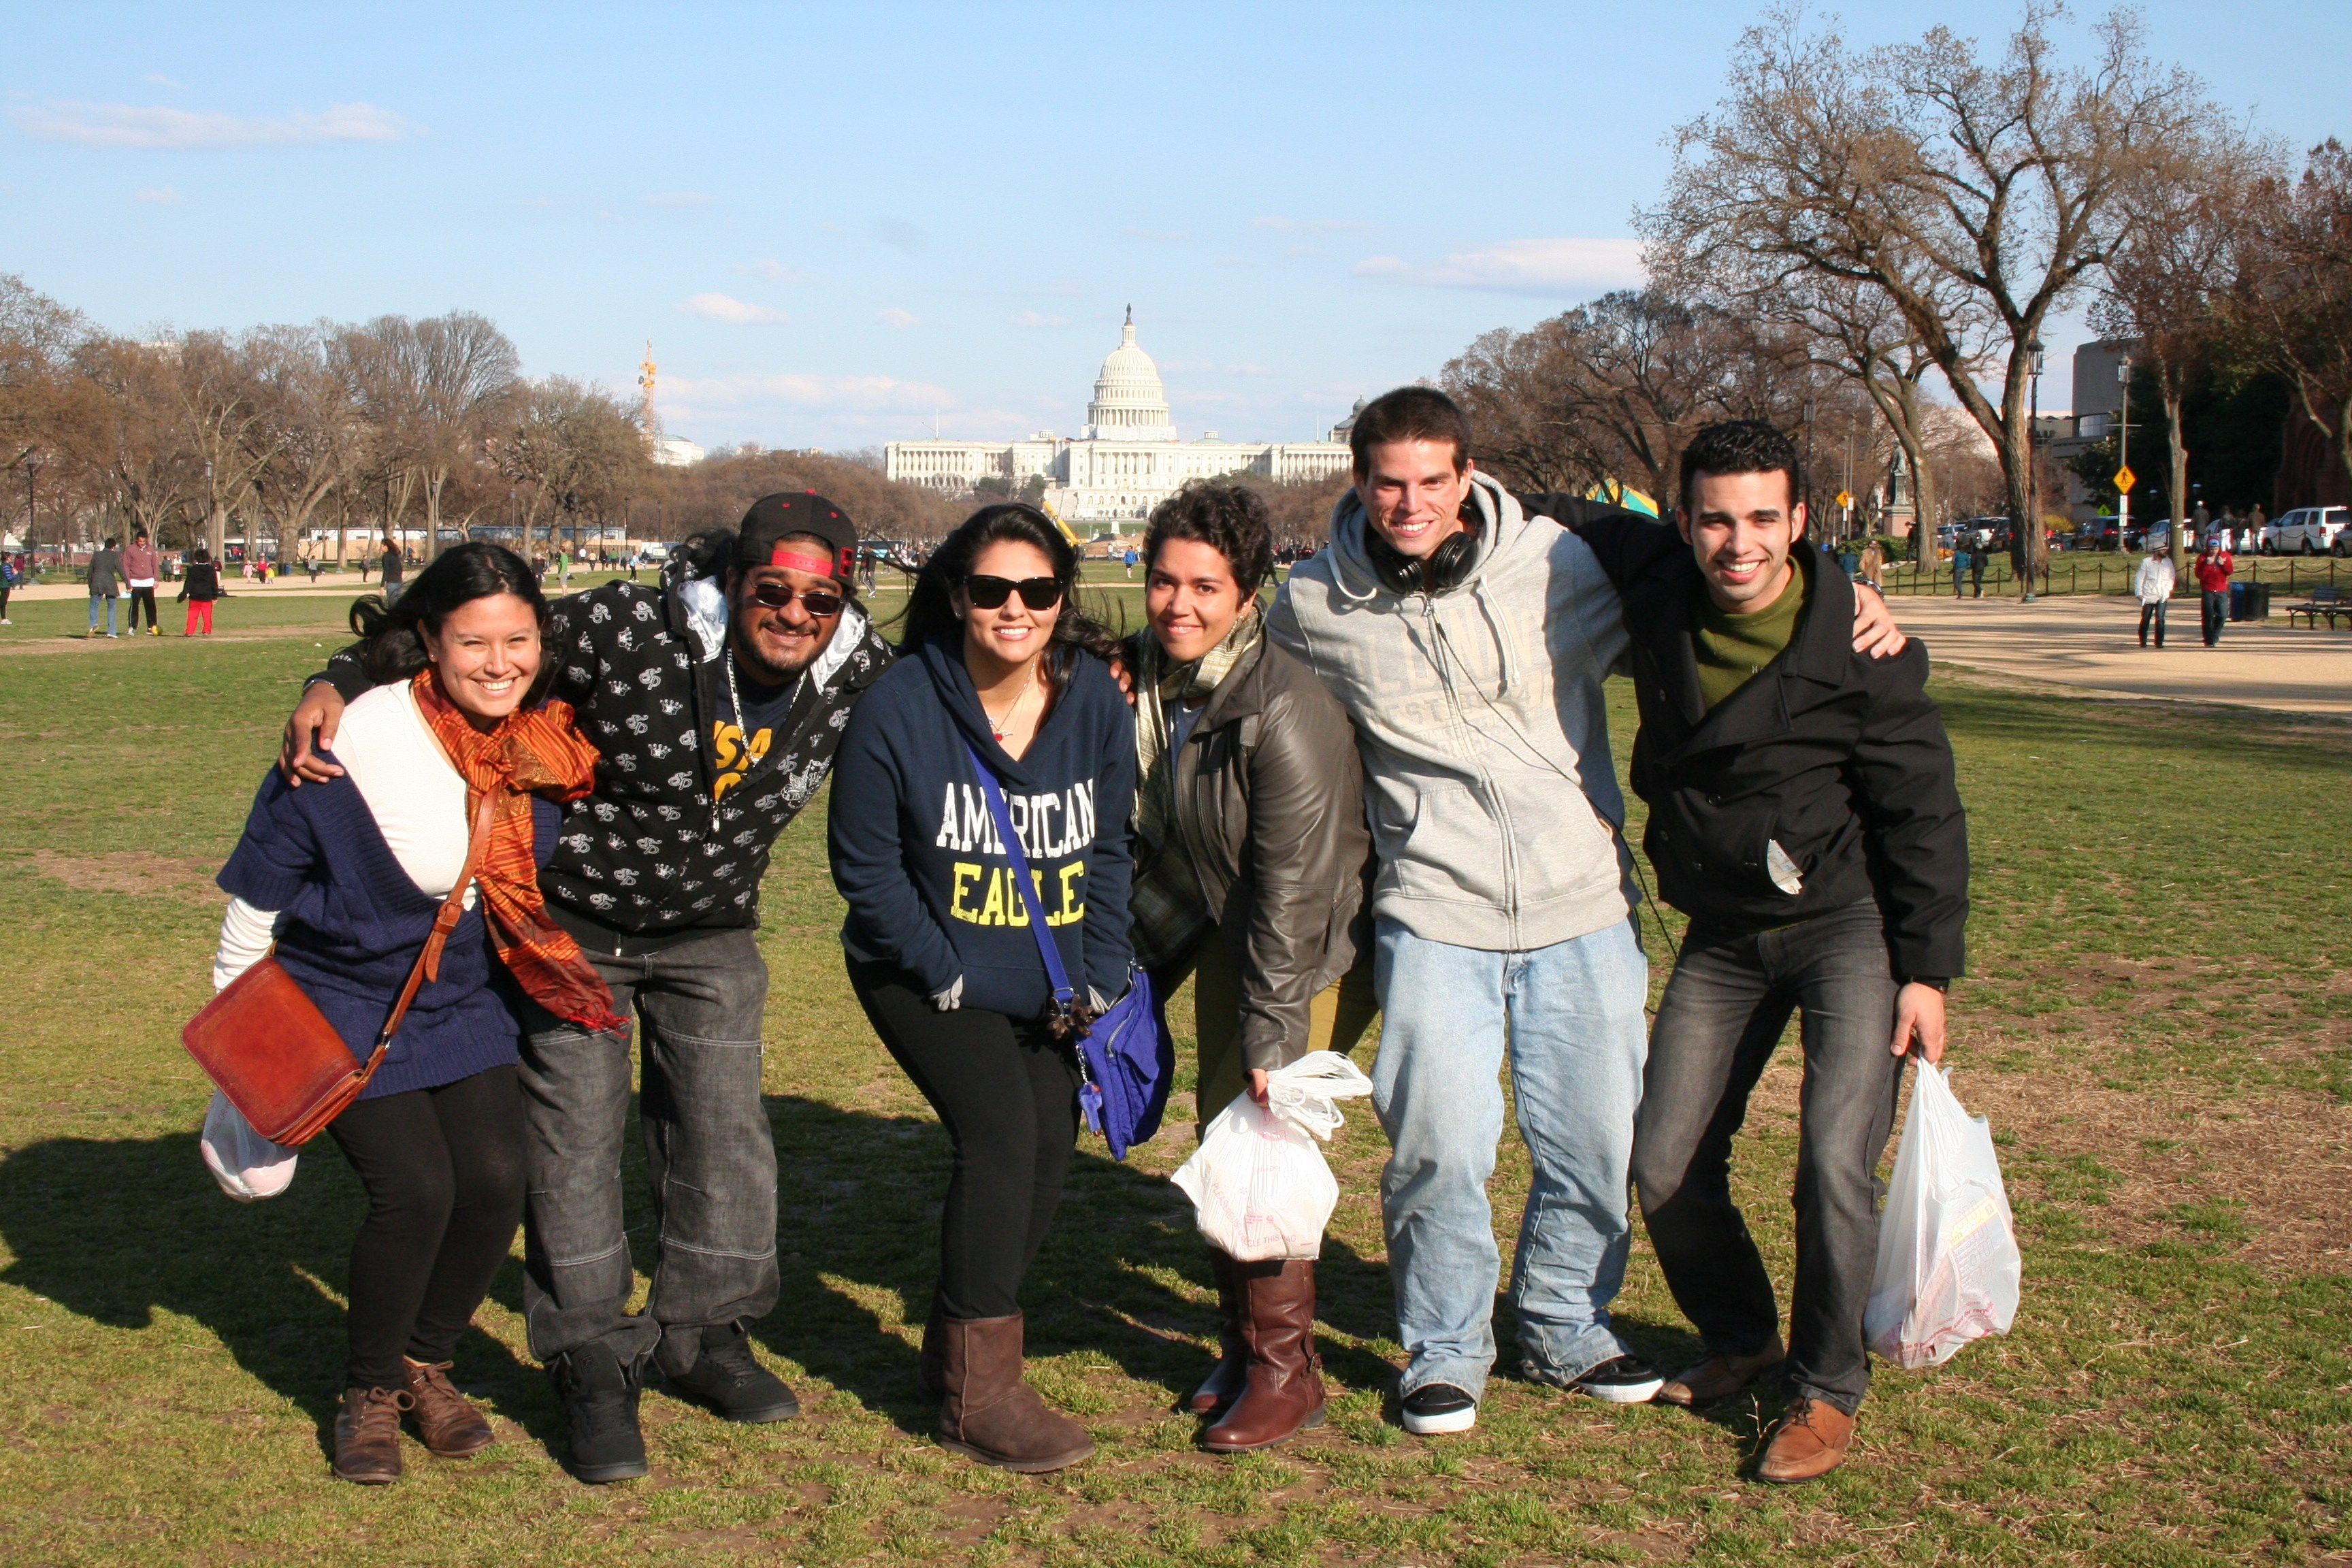 FIU Agroecology students pose in front of the U.S. Capitol in early March.